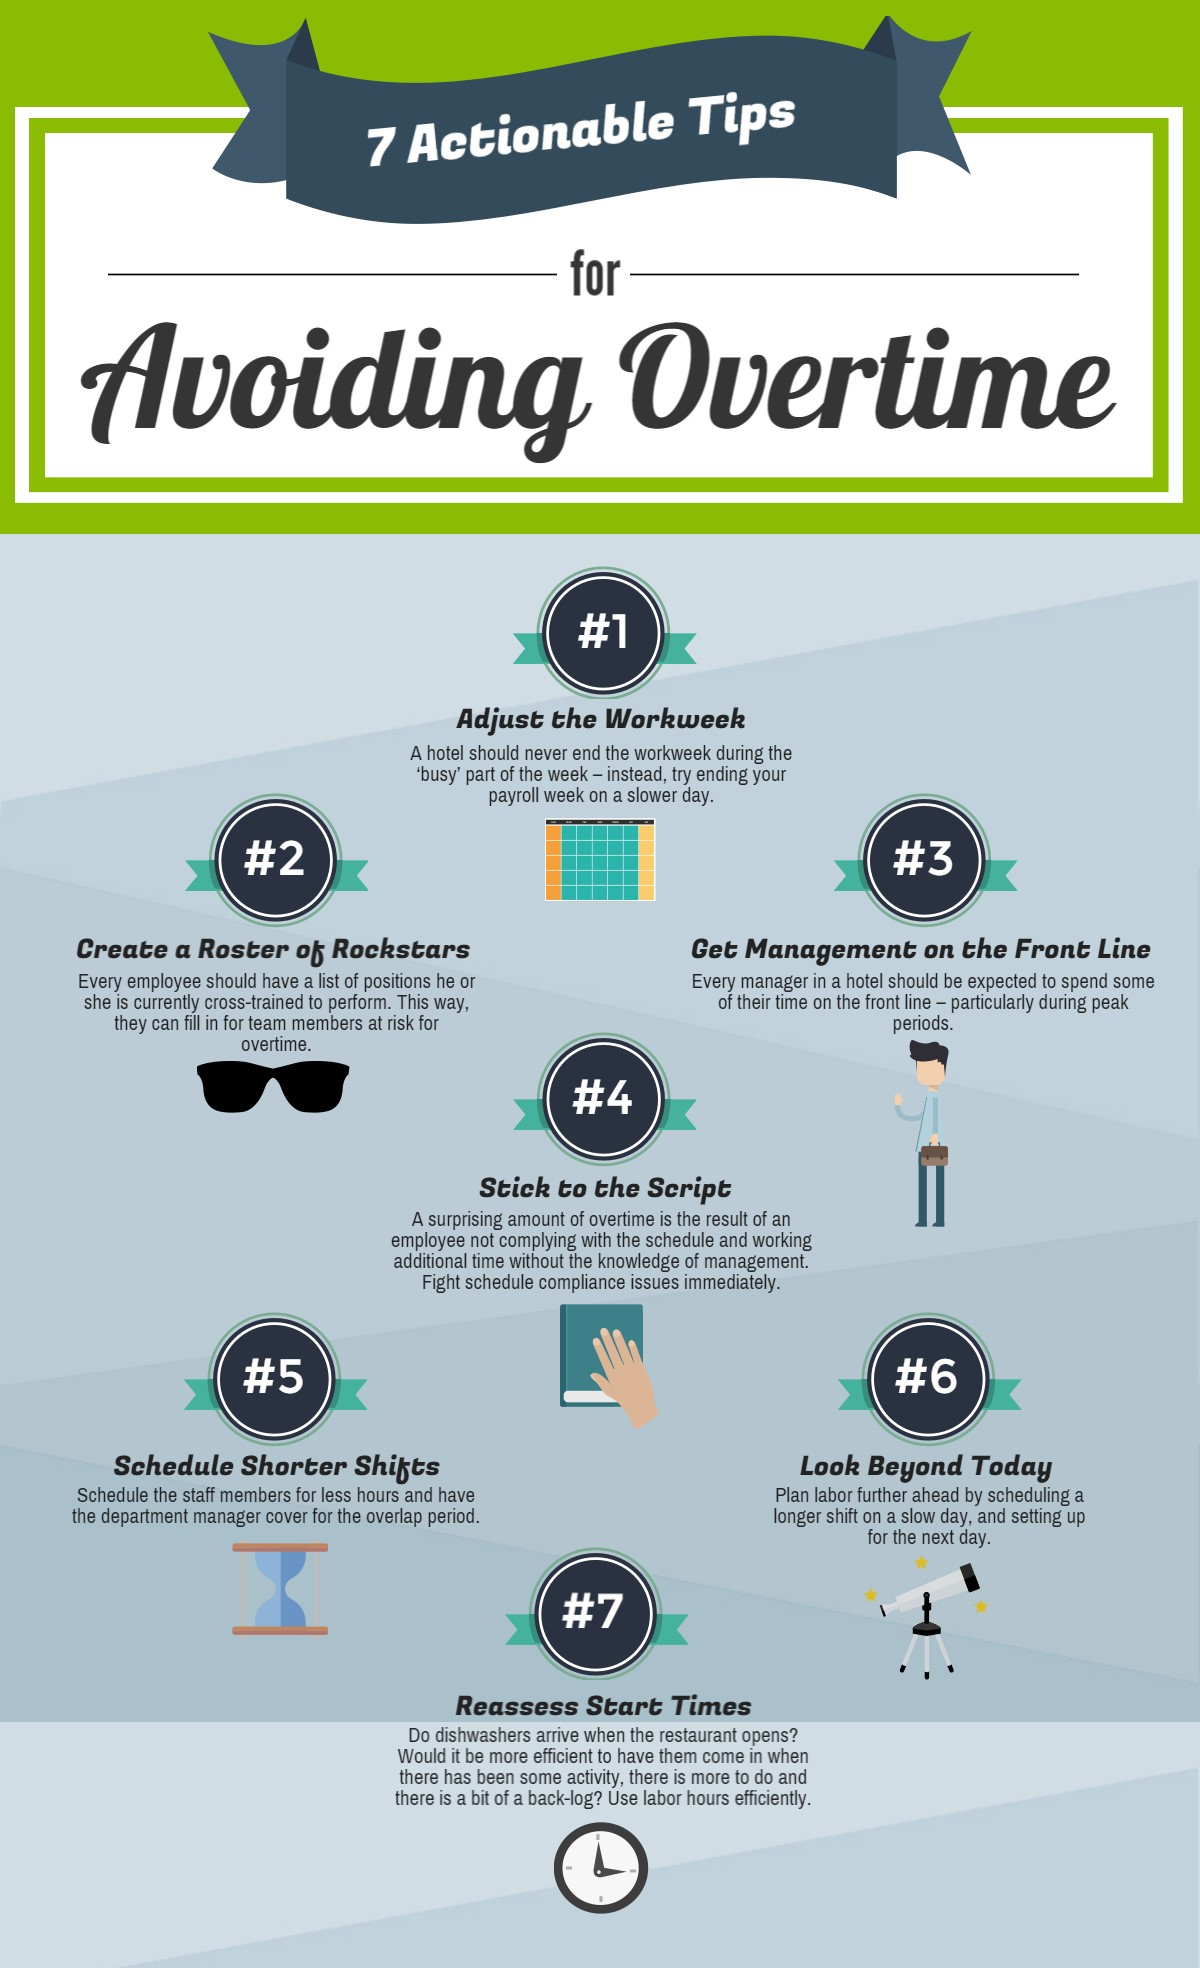 Avoiding-Overtime-Infographic-7-Tips 2020